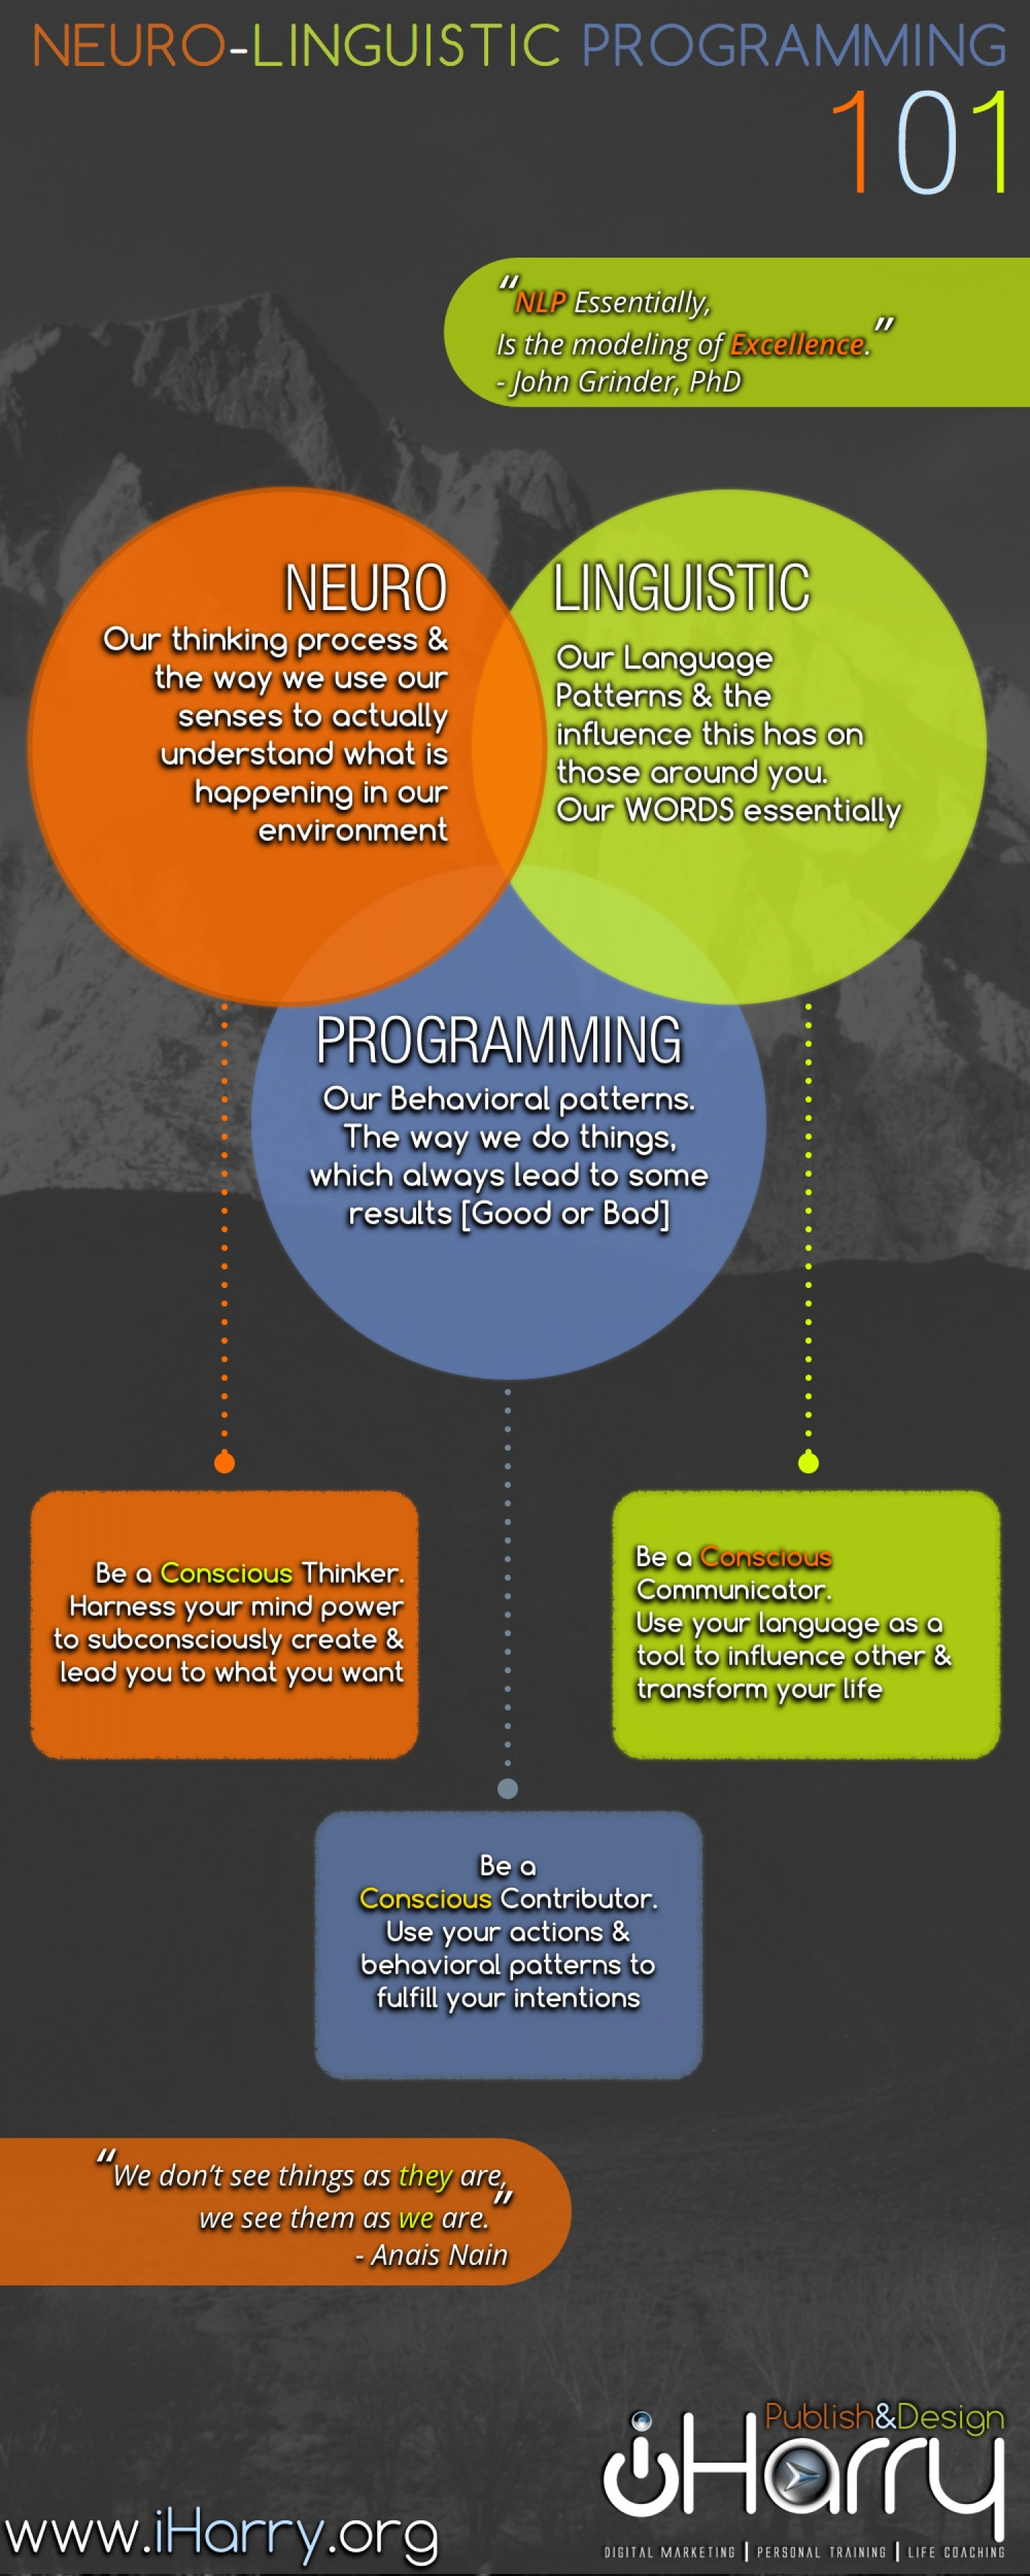 Neuro-Linguistic Programming 101 Infographic